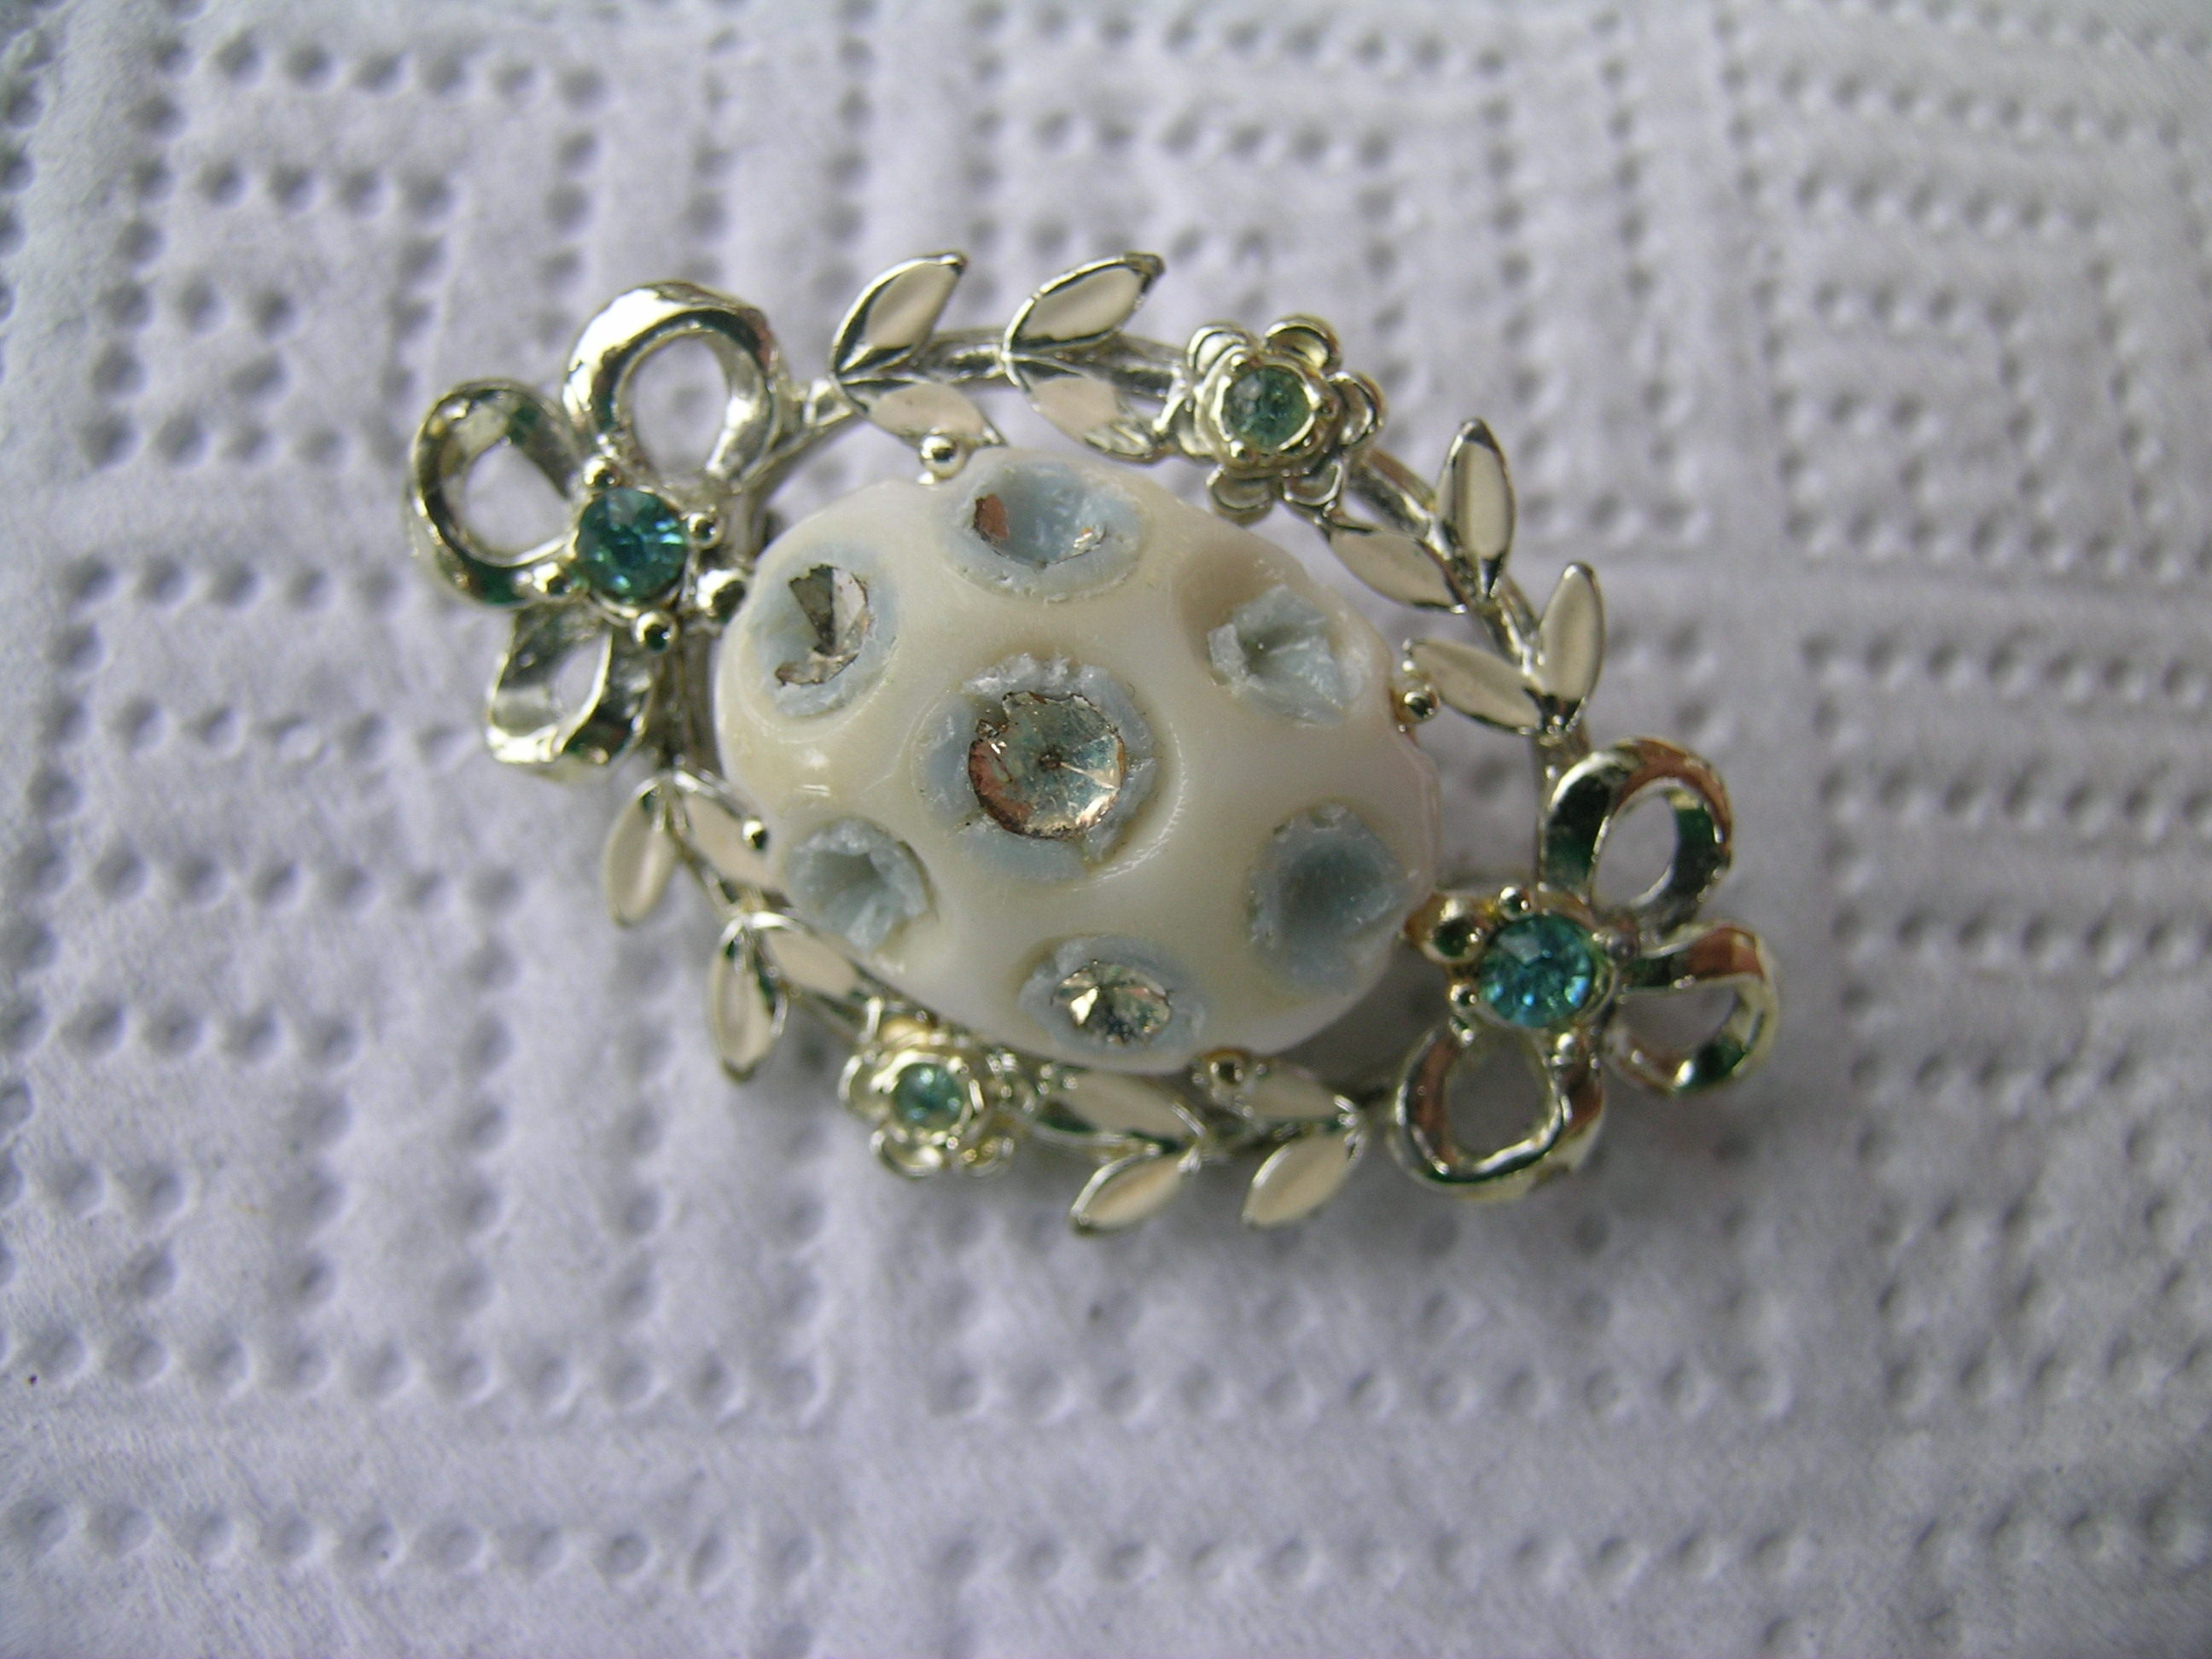 How to repair a brooch pin with missing jewels